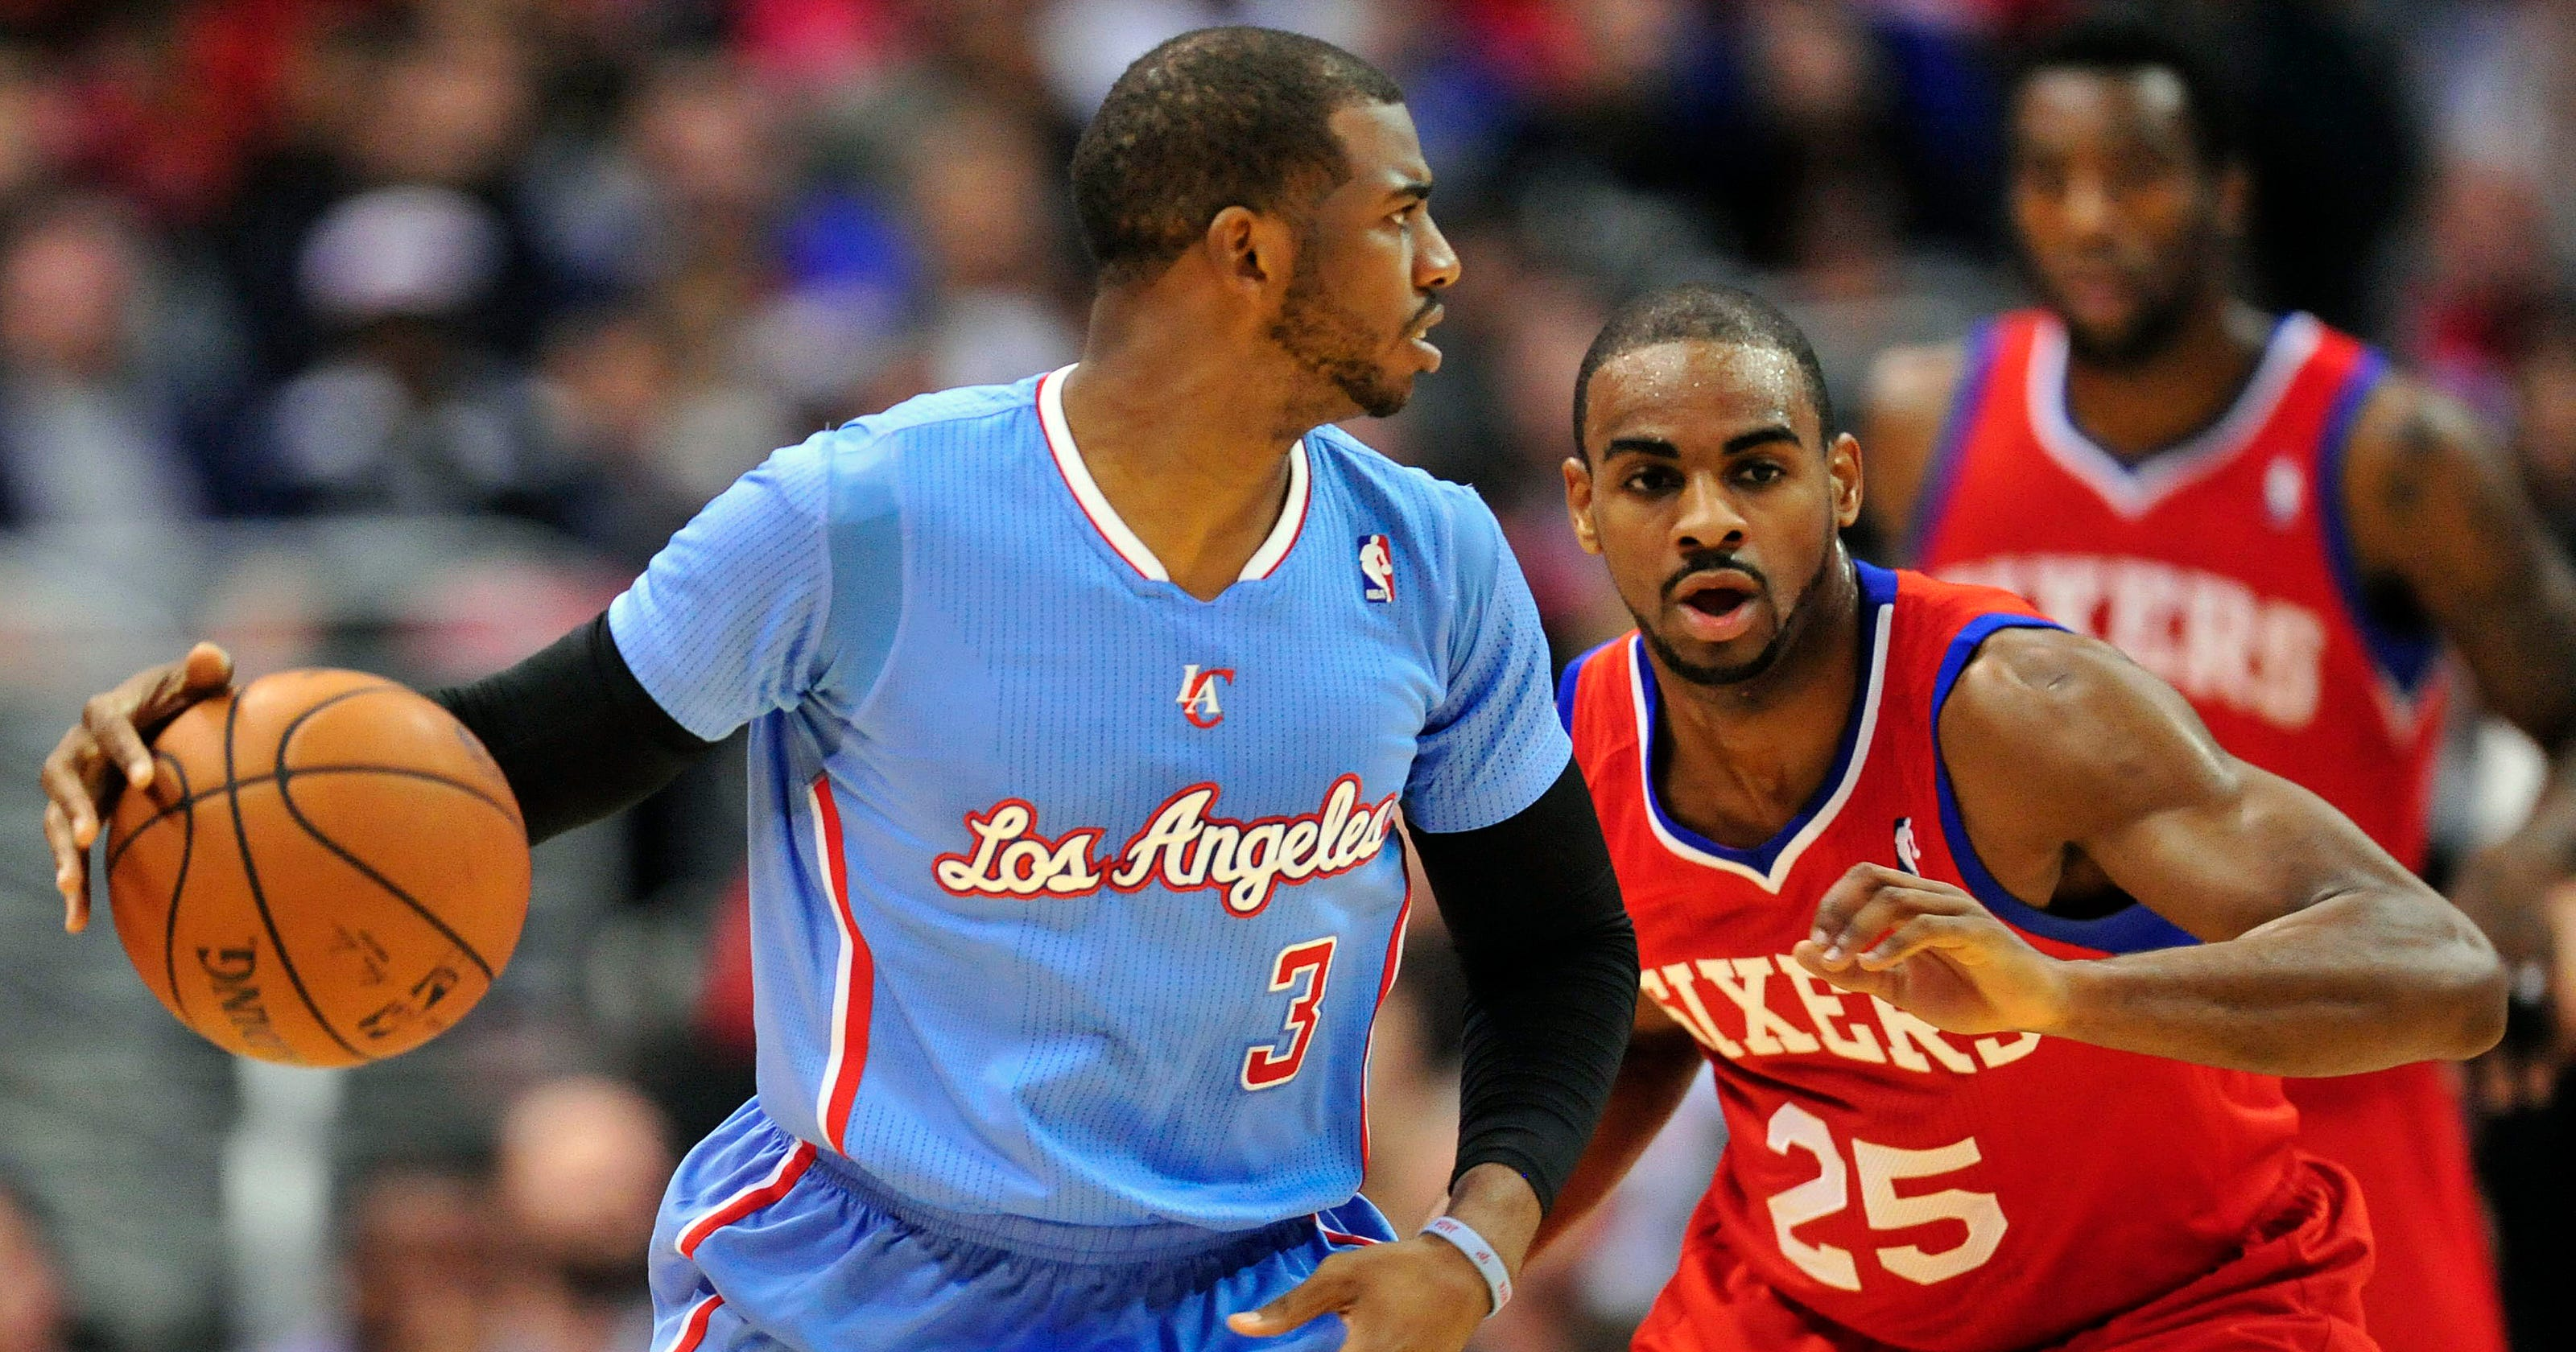 Clippers dominate 76ers in Chris Paul's return